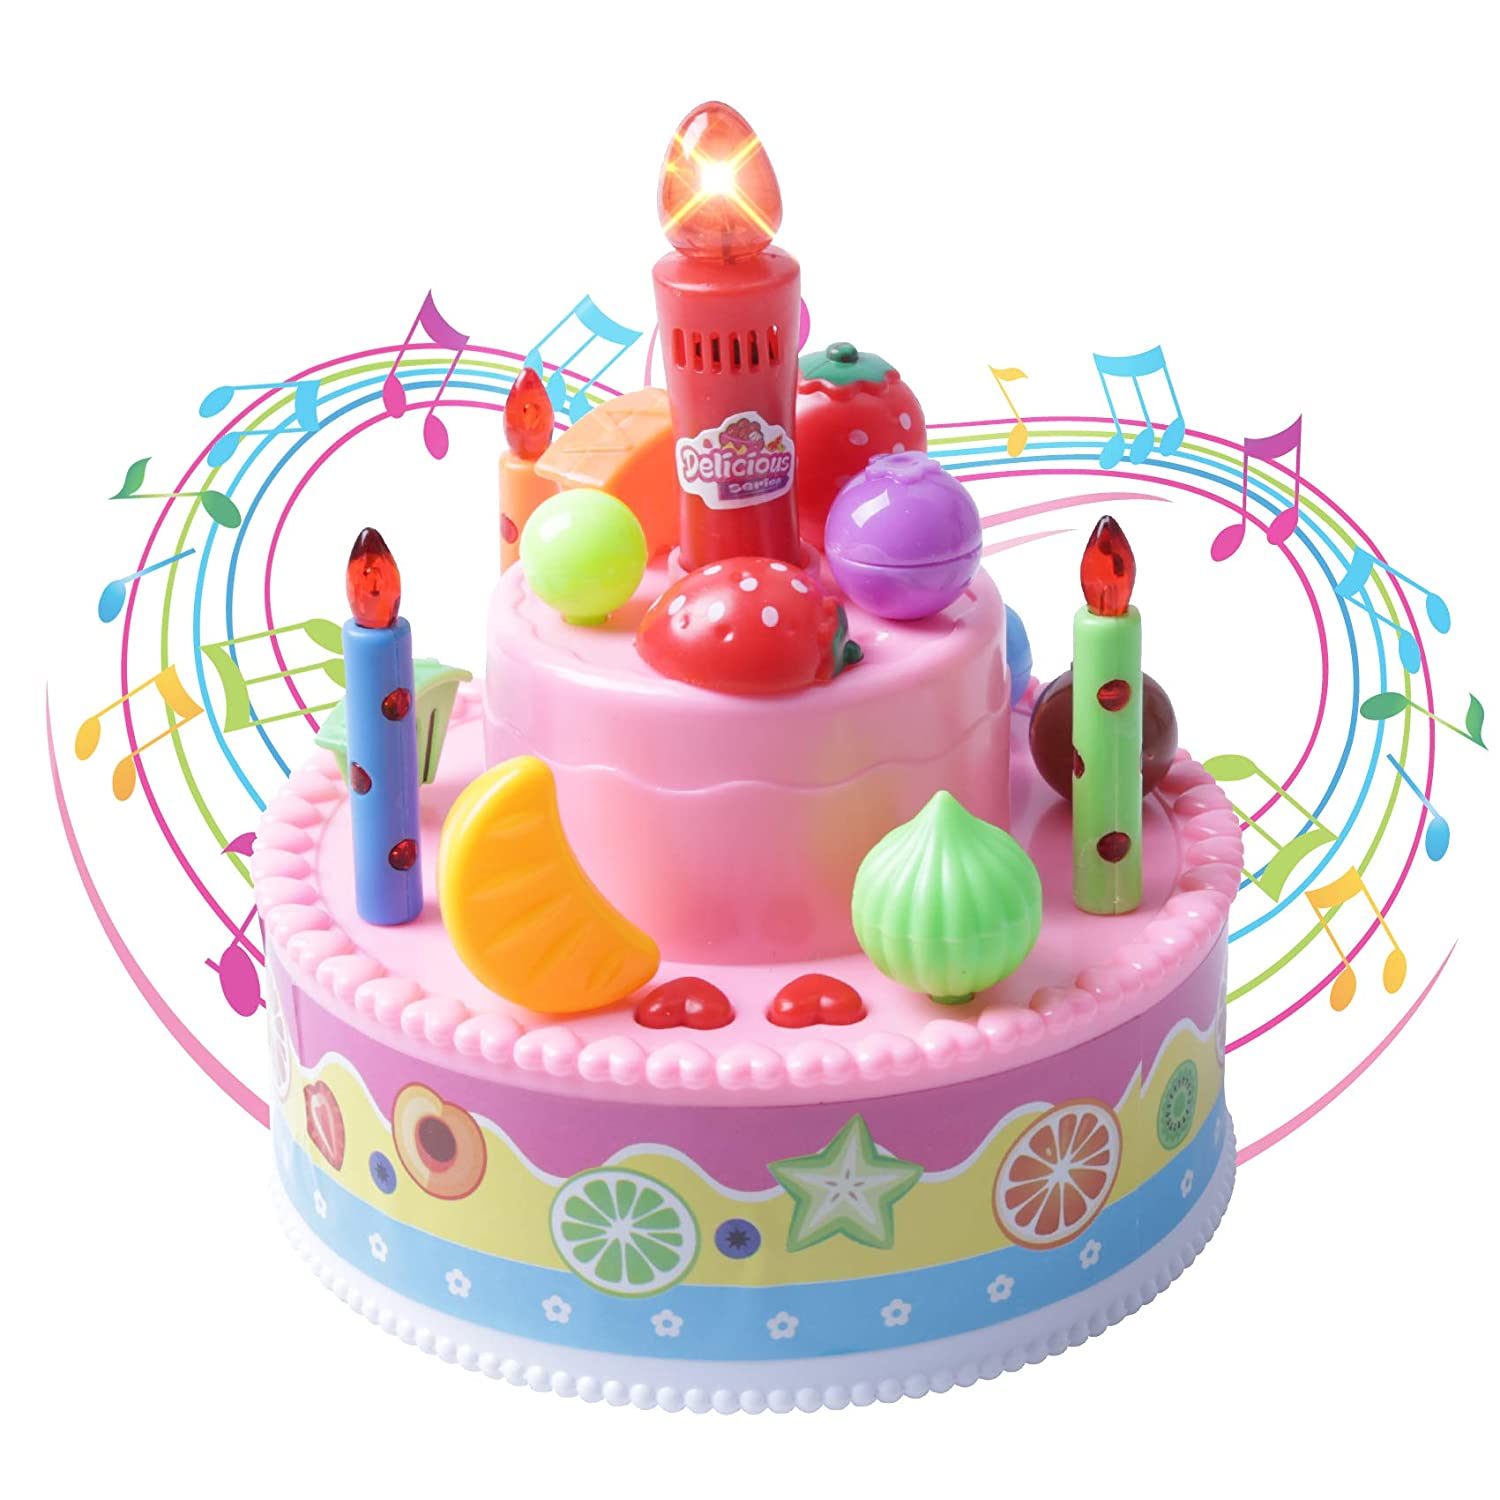 Excellent Record And Playback 4 6 Musical Birthday Cake Toy With Light Up Funny Birthday Cards Online Elaedamsfinfo